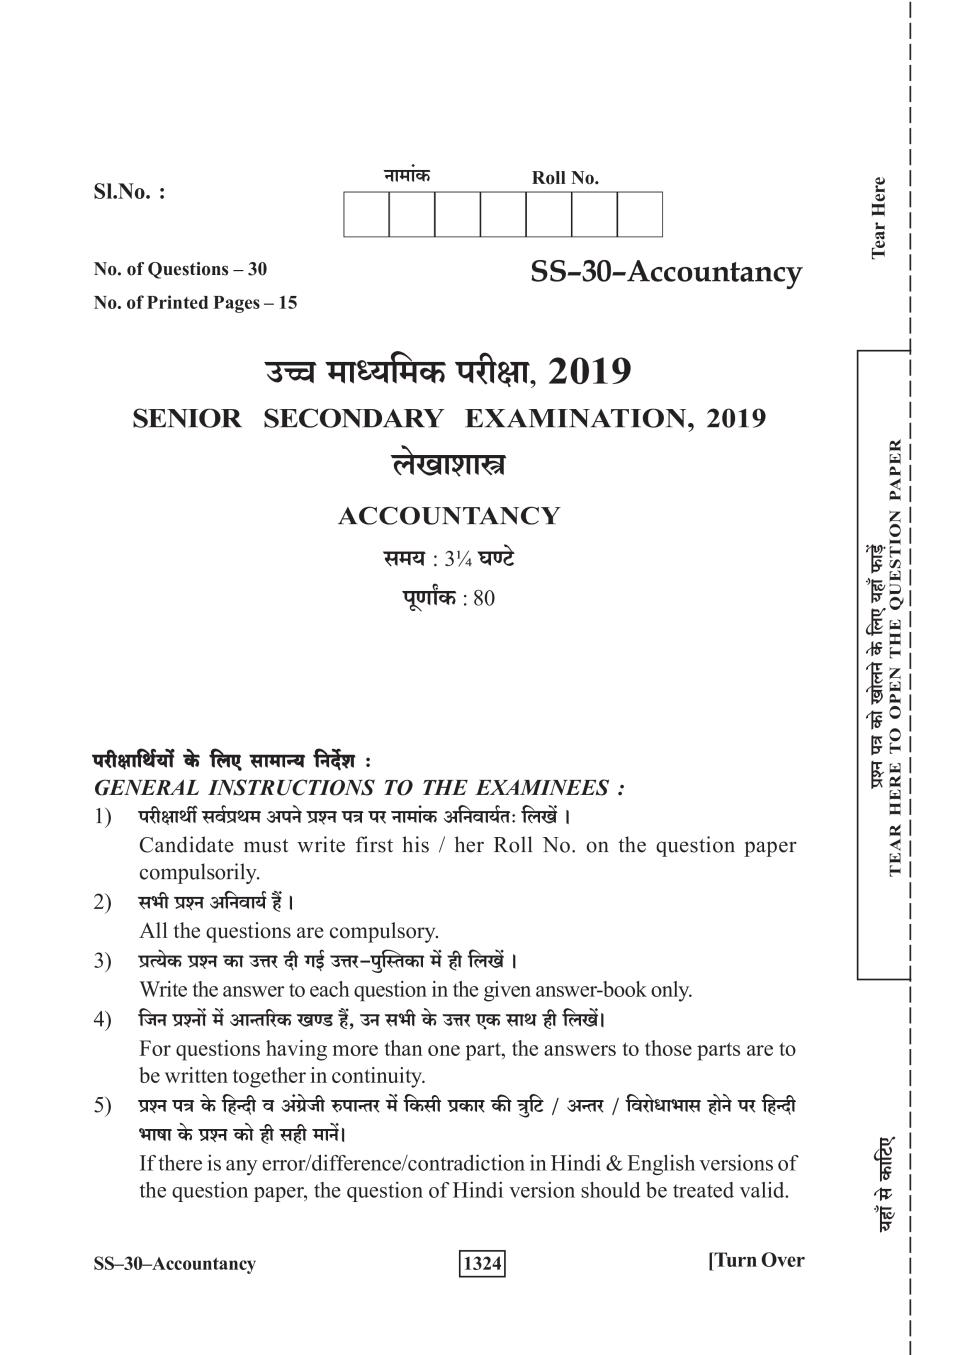 Rajasthan Board Sr. Secondary Accountancy Question Paper